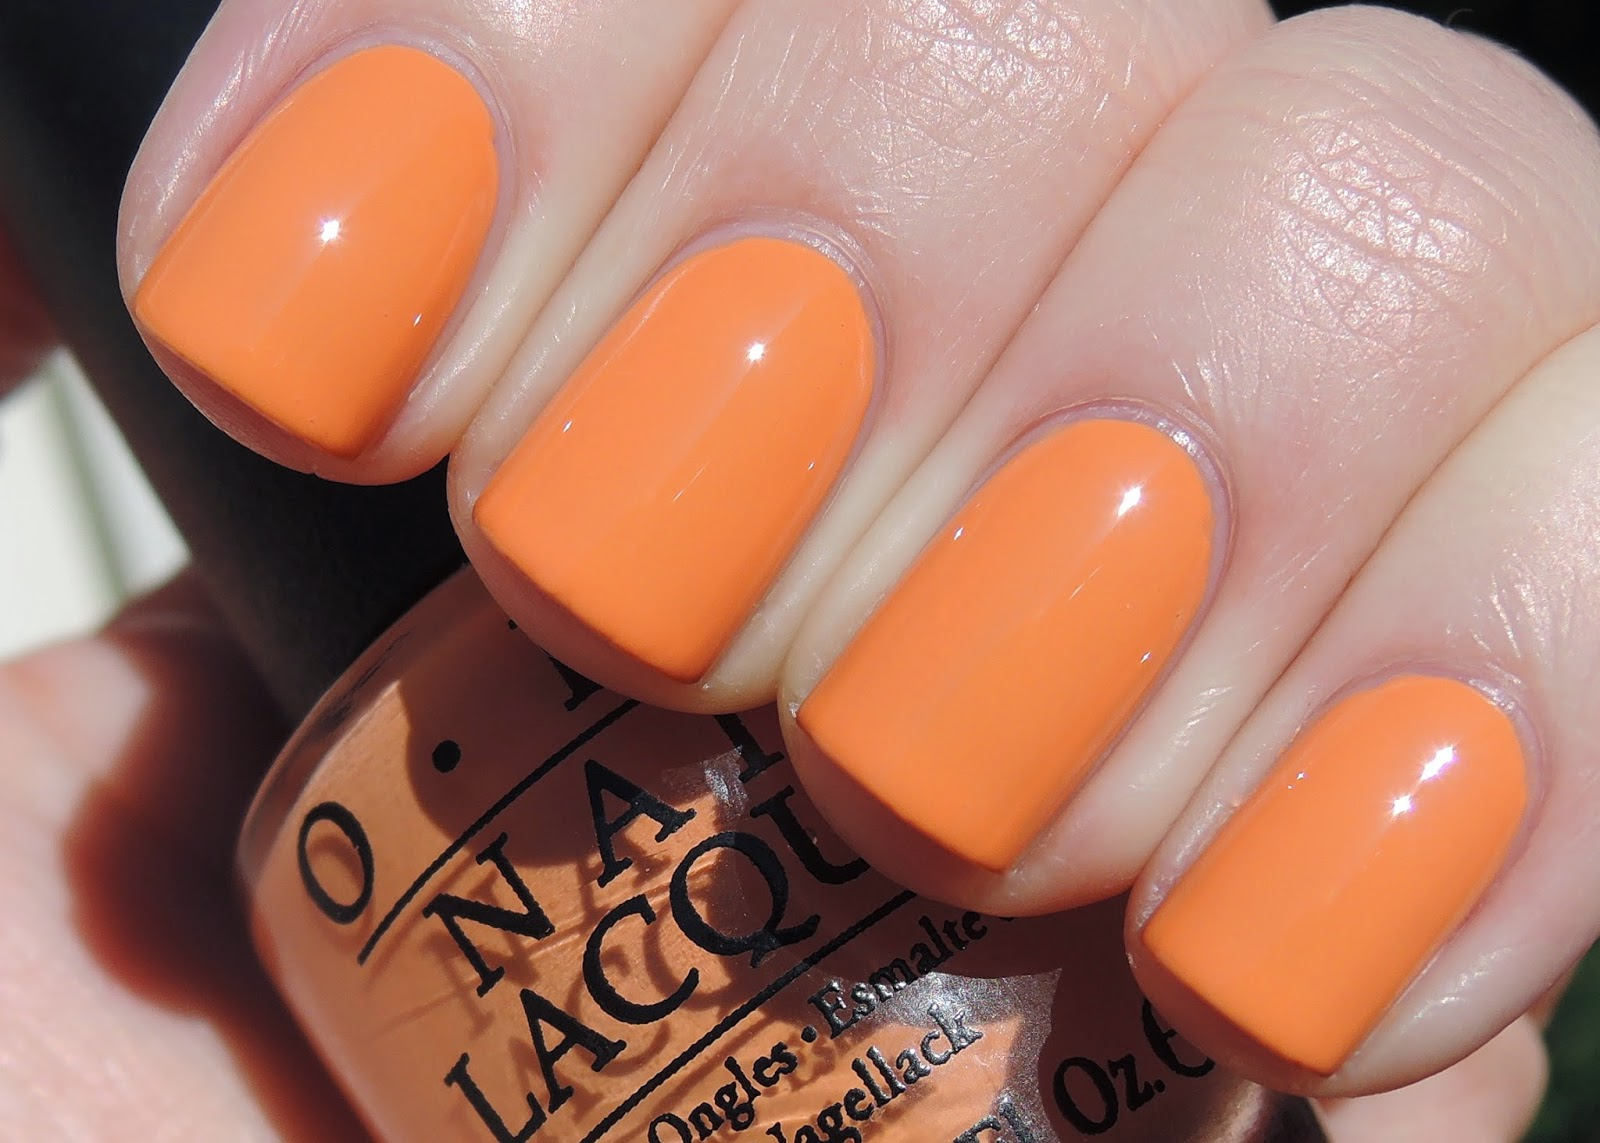 OPI Is Mai Tai Crooked?